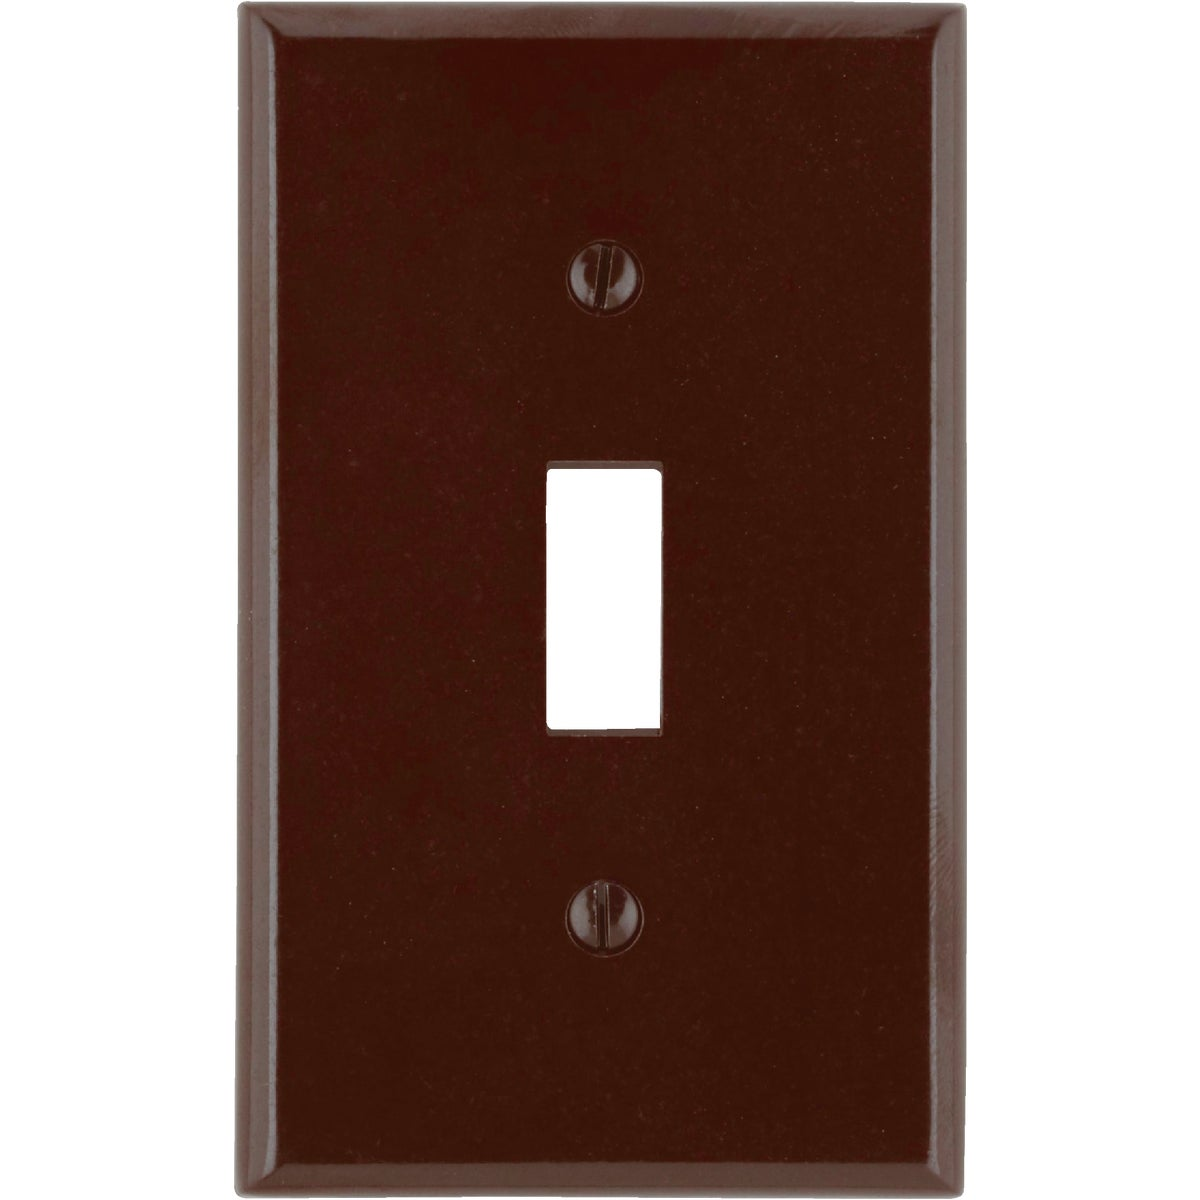 BRN 1-TOGGLE WALL PLATE - 85001 by Leviton Mfg Co